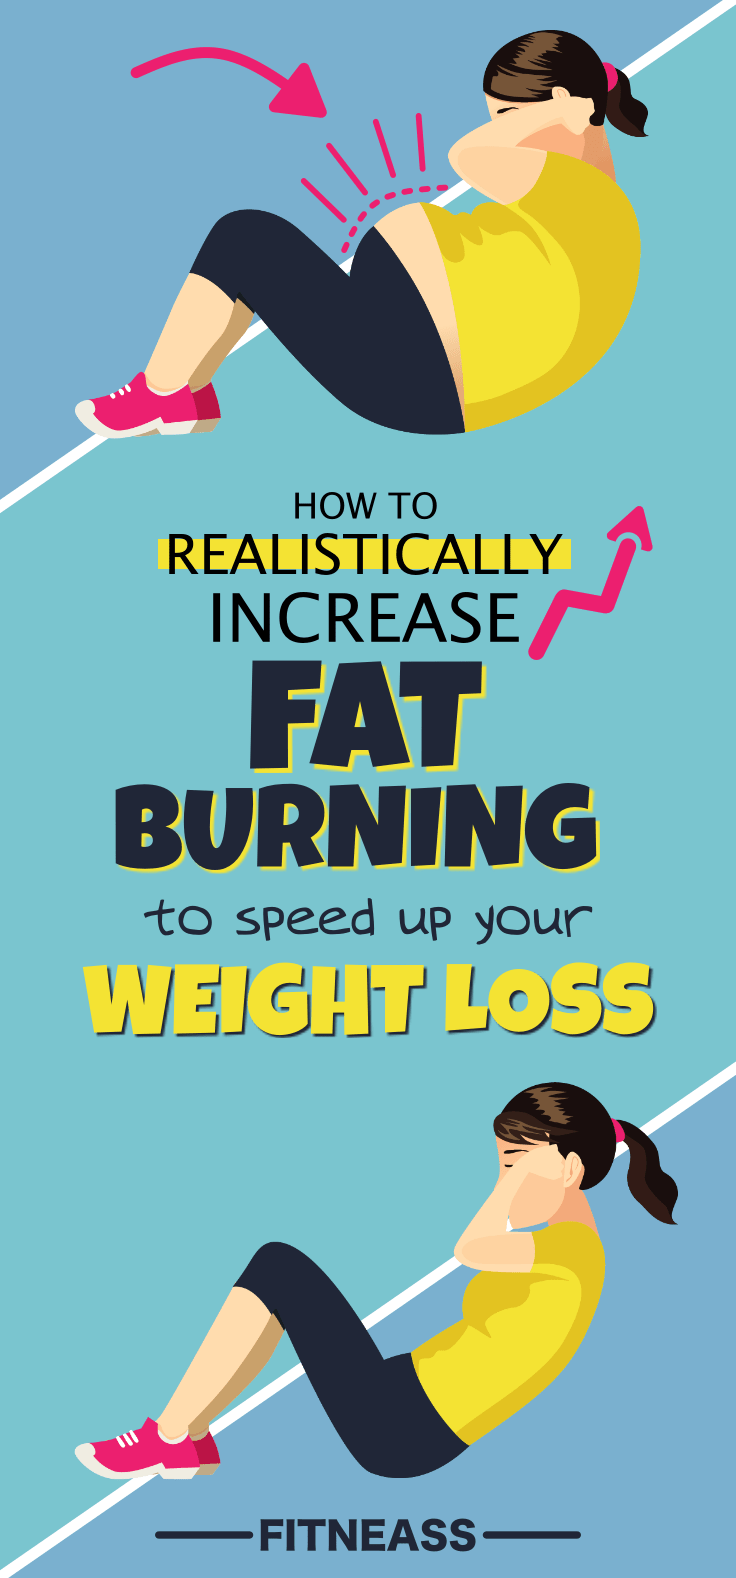 How To Realistically Increase Fat Burning